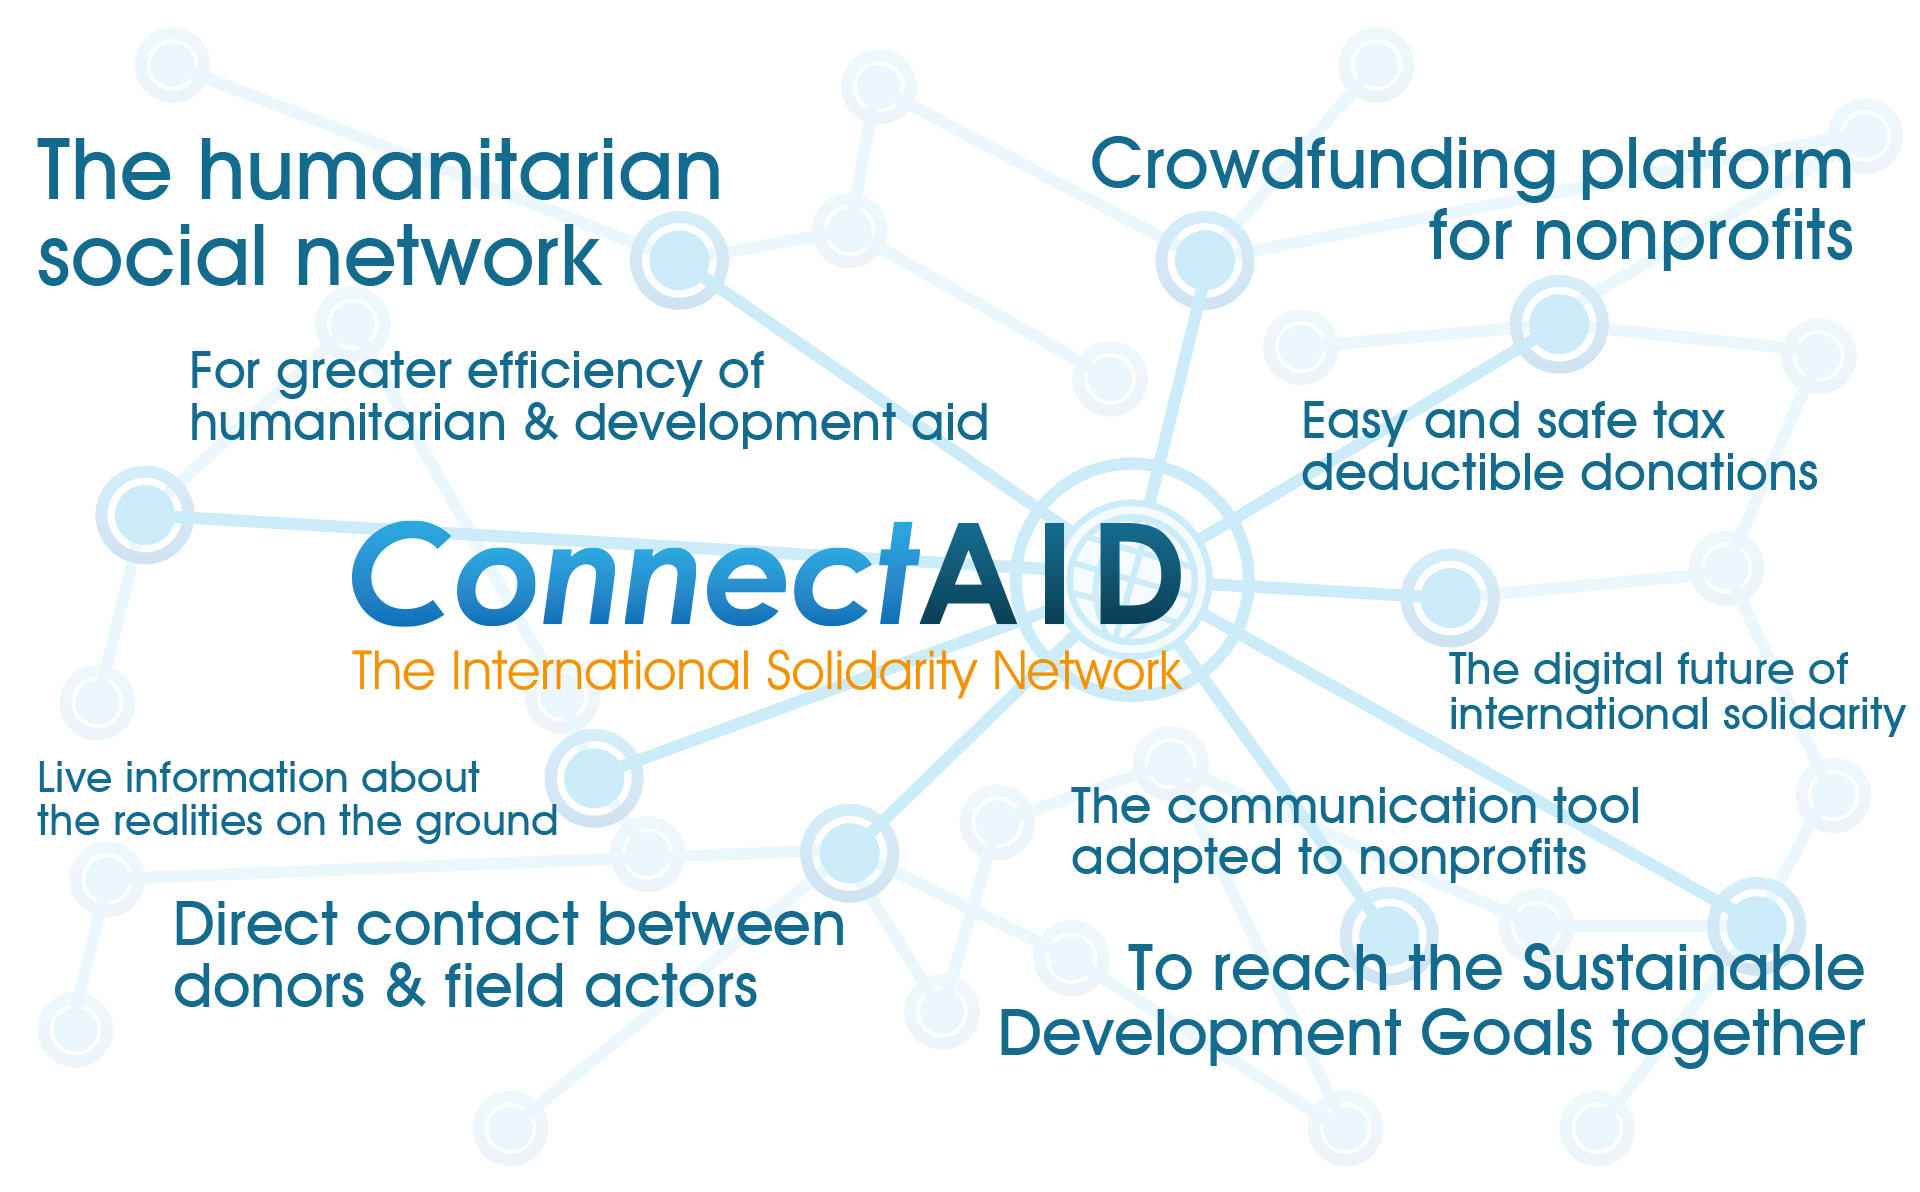 ConnectAID international solidarity network